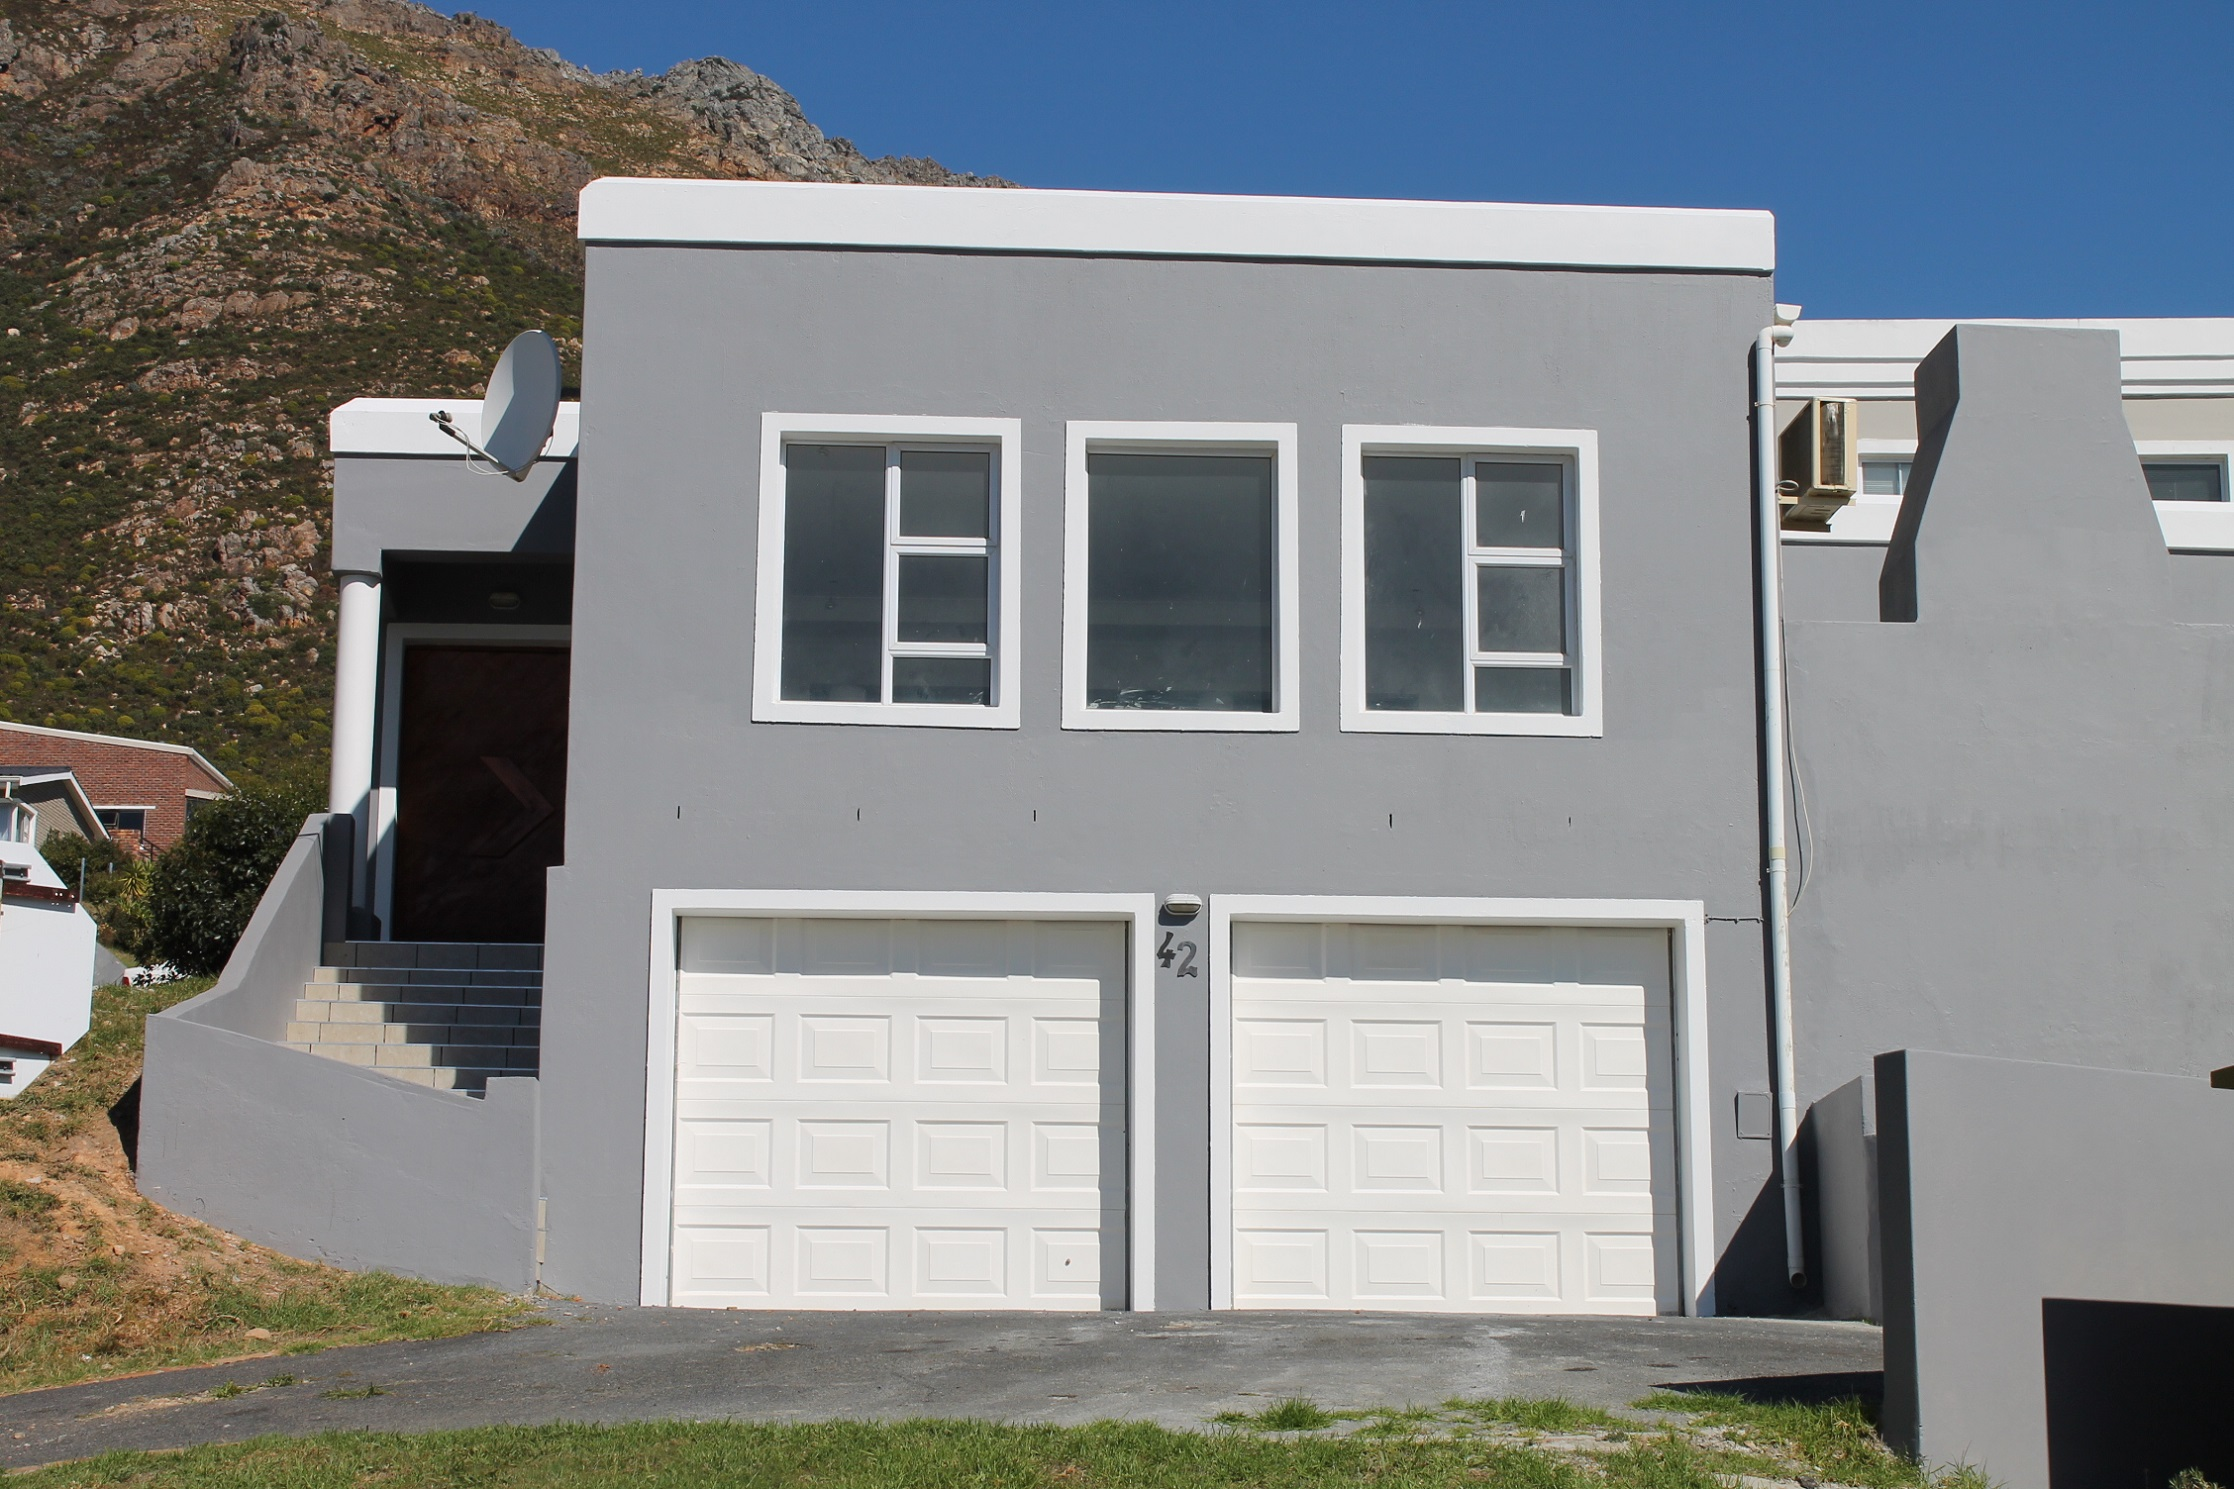 4 Bedroom House for sale in Mountainside ENT0009453 : photo#5